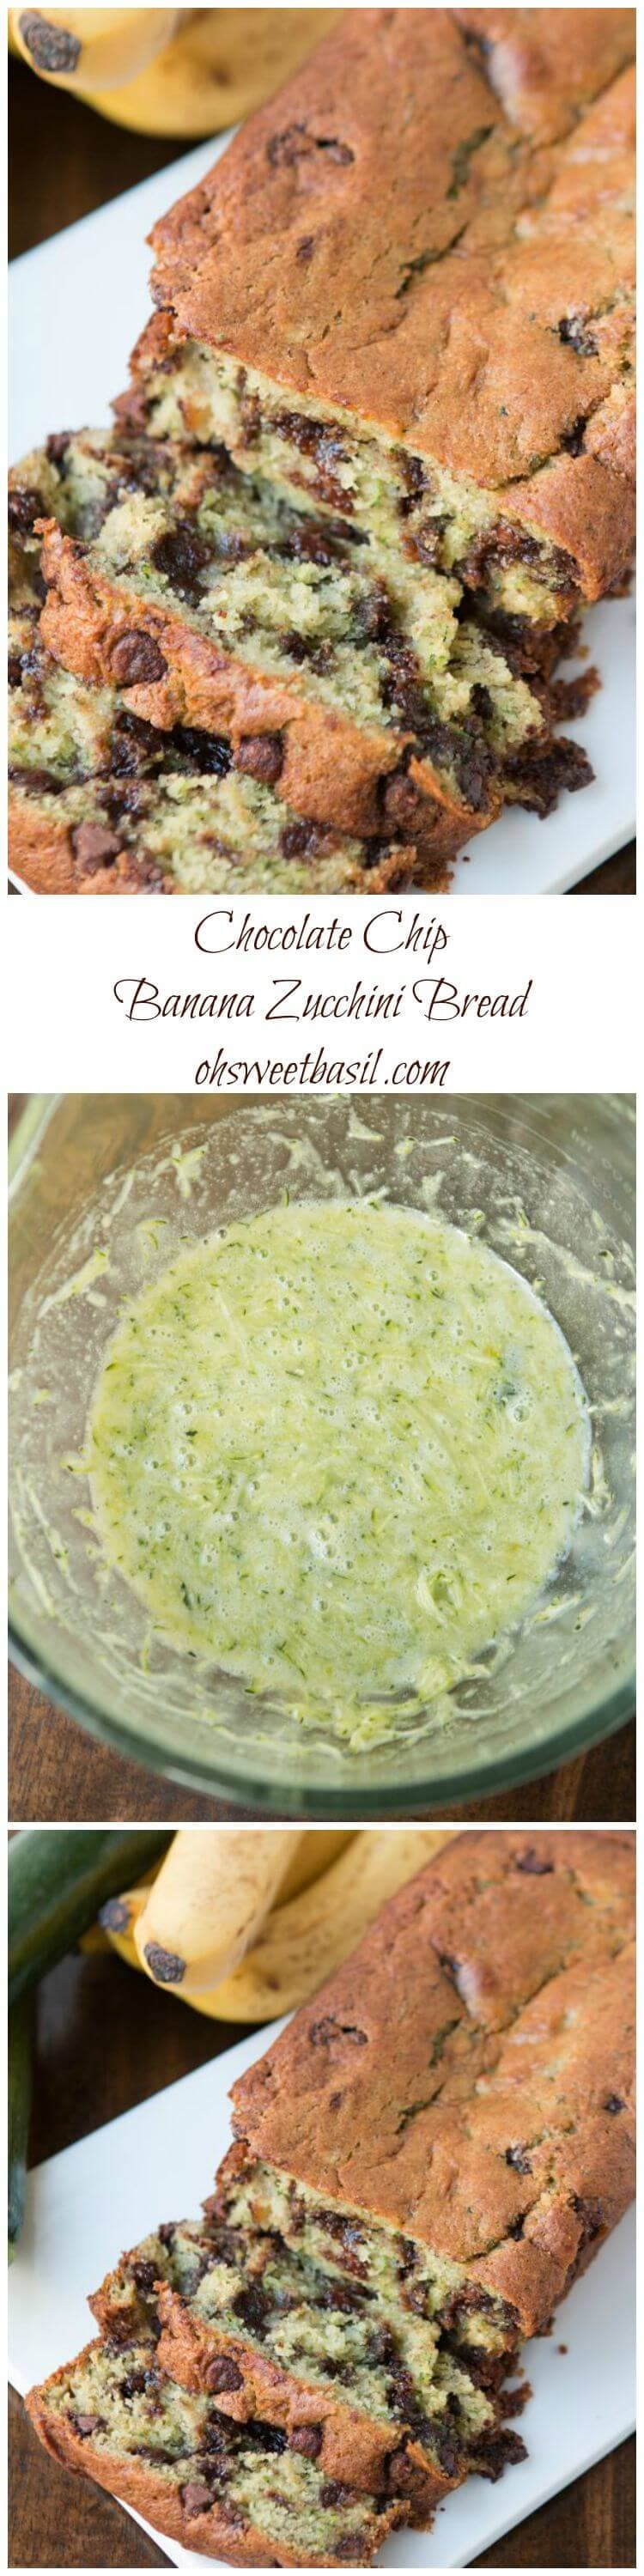 I may never make a regular banana bread again! This one is ridiculously moist and you'd never know there's zucchini in there because it's so fine! ohsweetbasil.com chcolate chip